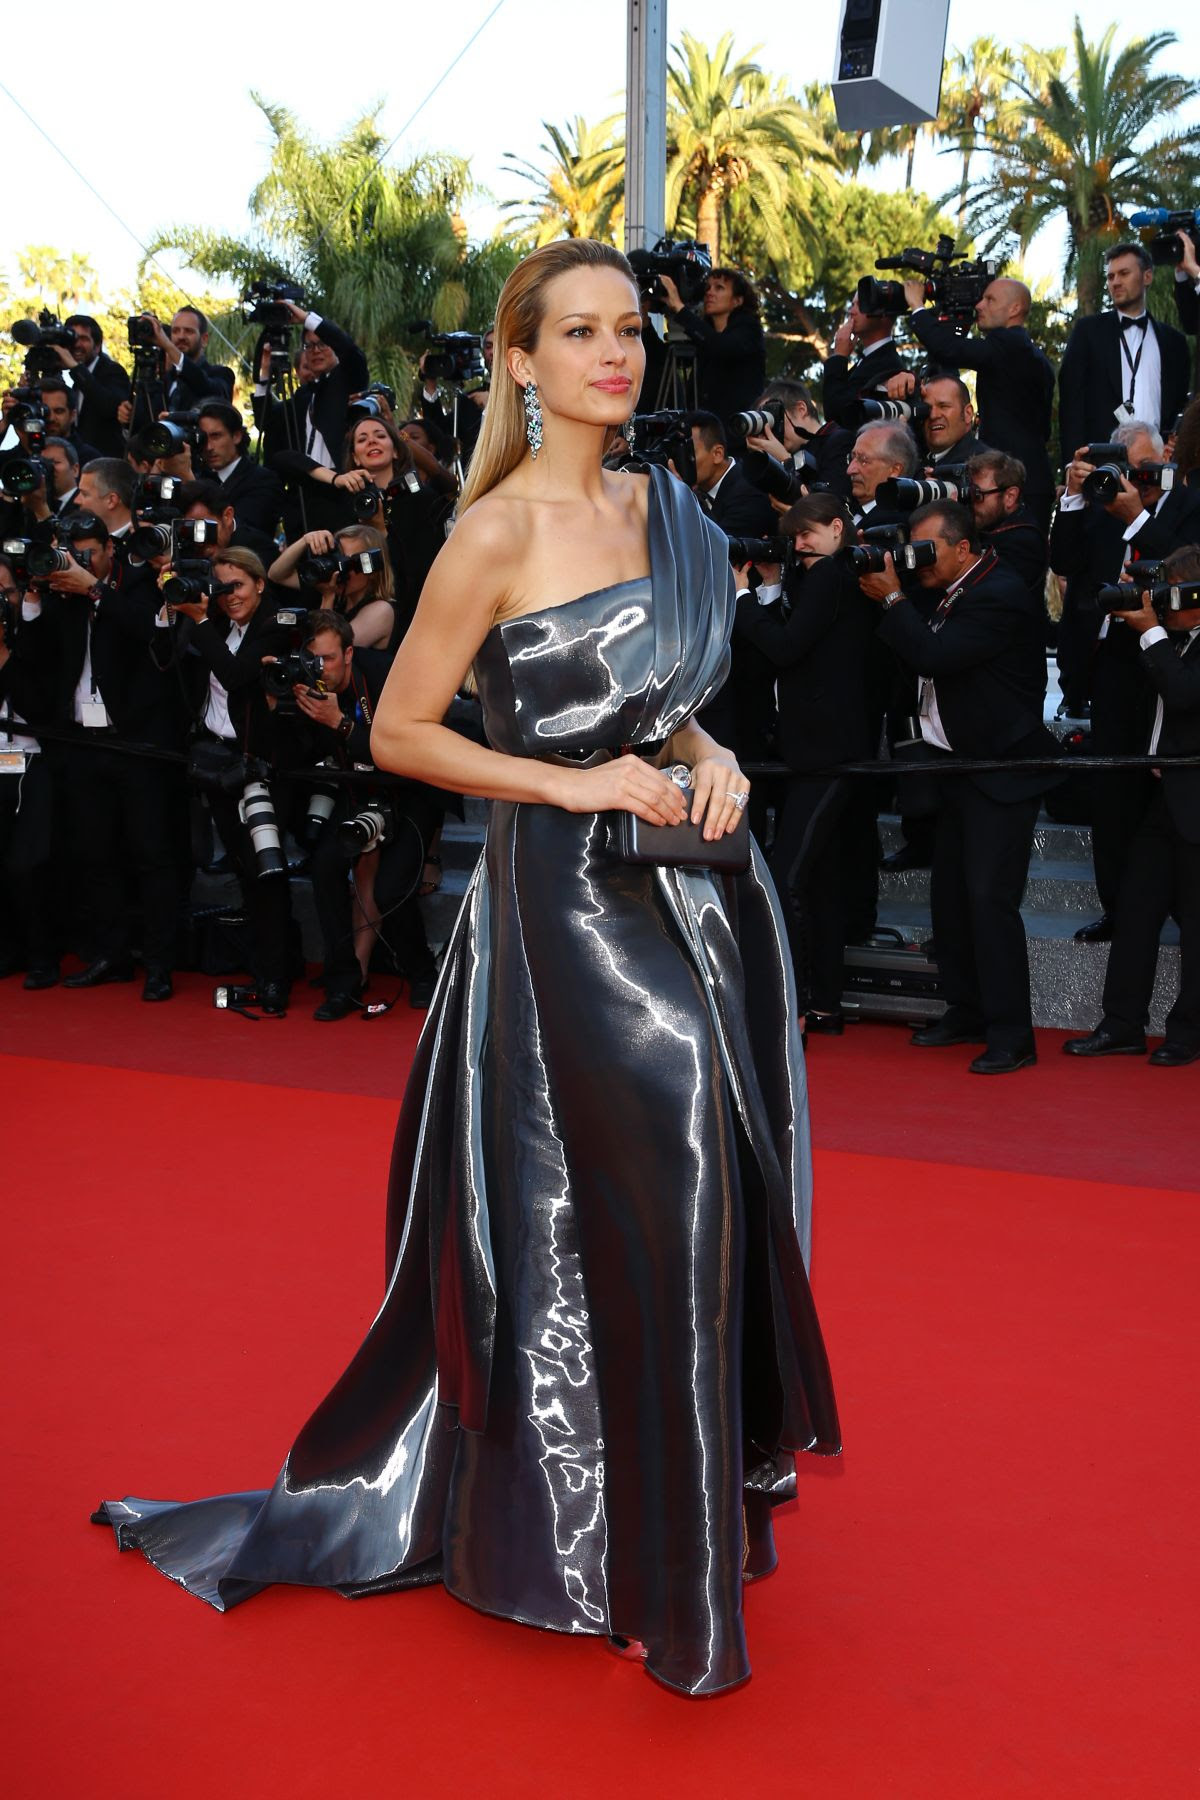 PETRA NEMCOVA at Julietta Premiere at 69th Annual Cannes Film Festival 05/17/2016